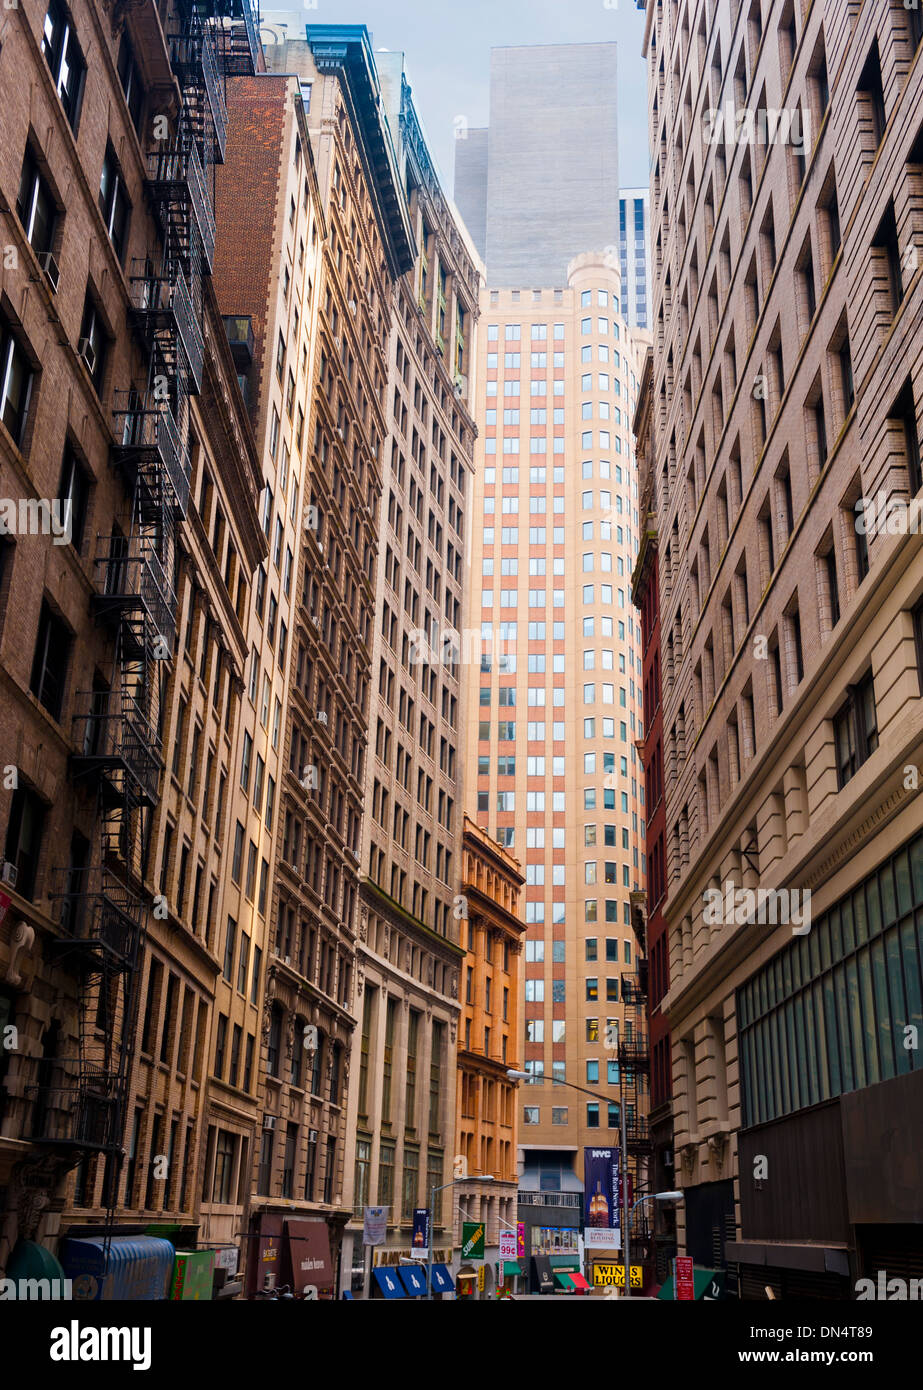 Wall Street business district in New York City Stock Photo ...